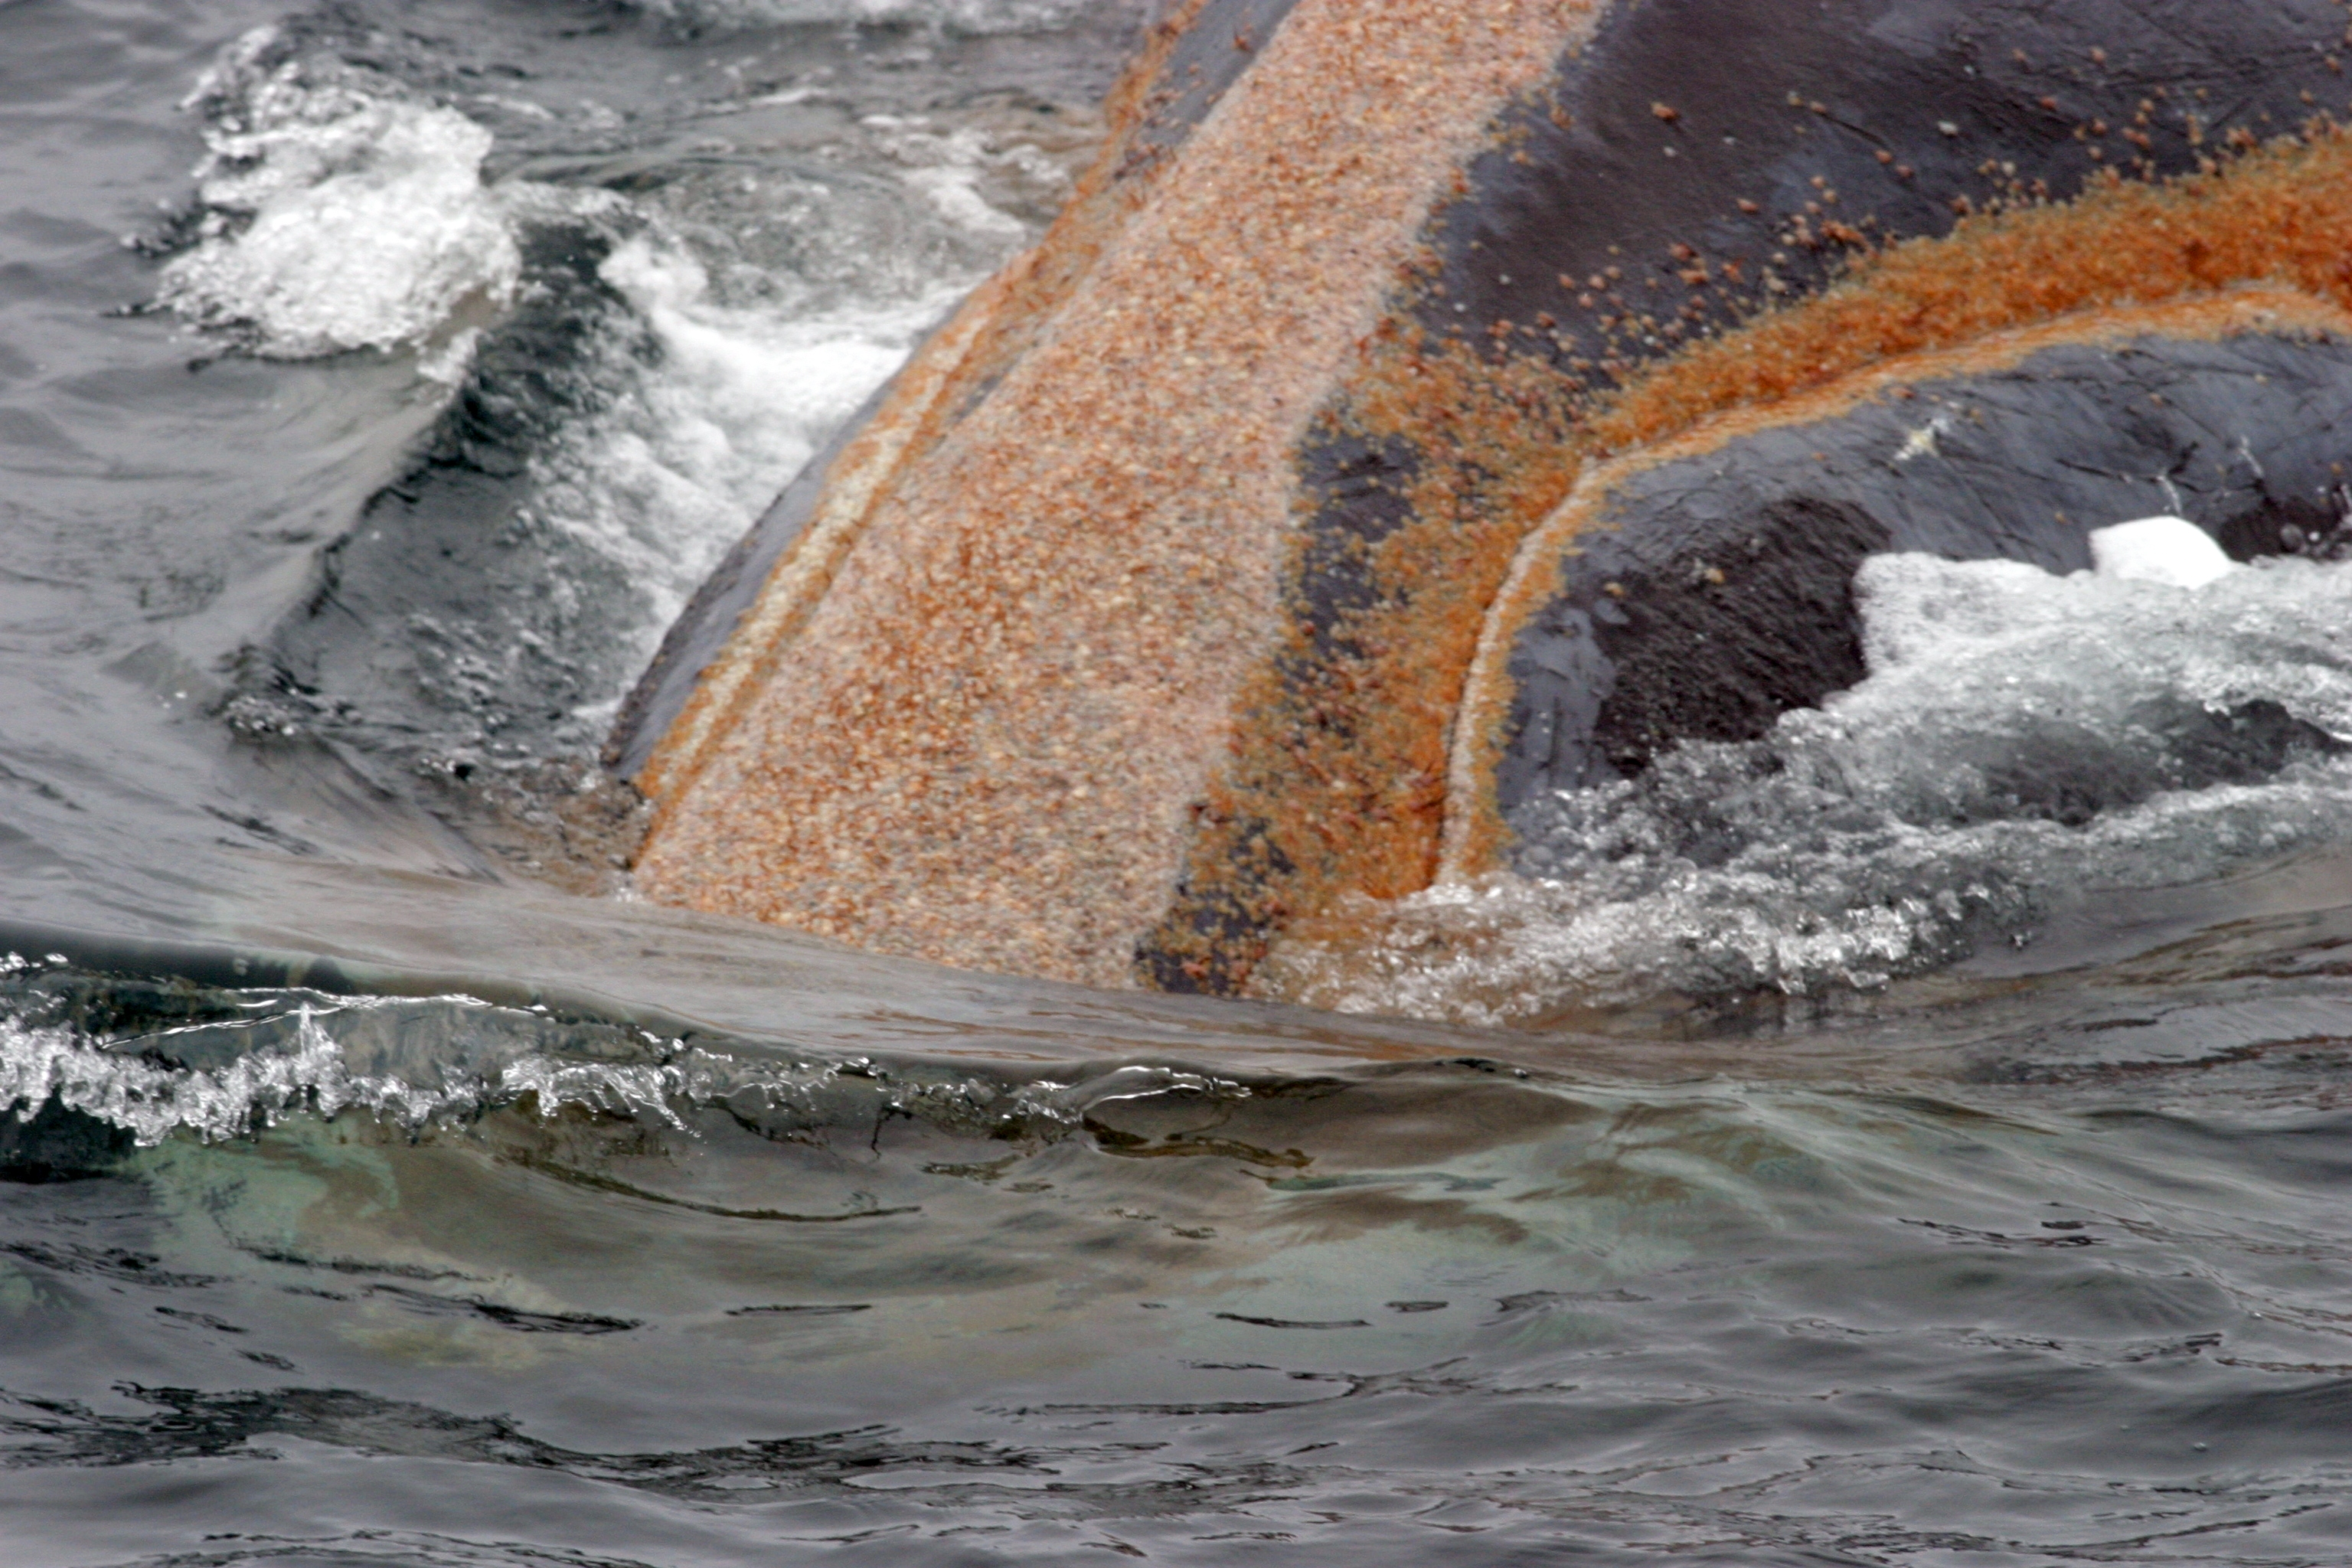 File:Orange whale lice right whale.jpg  Wikimedia Commons